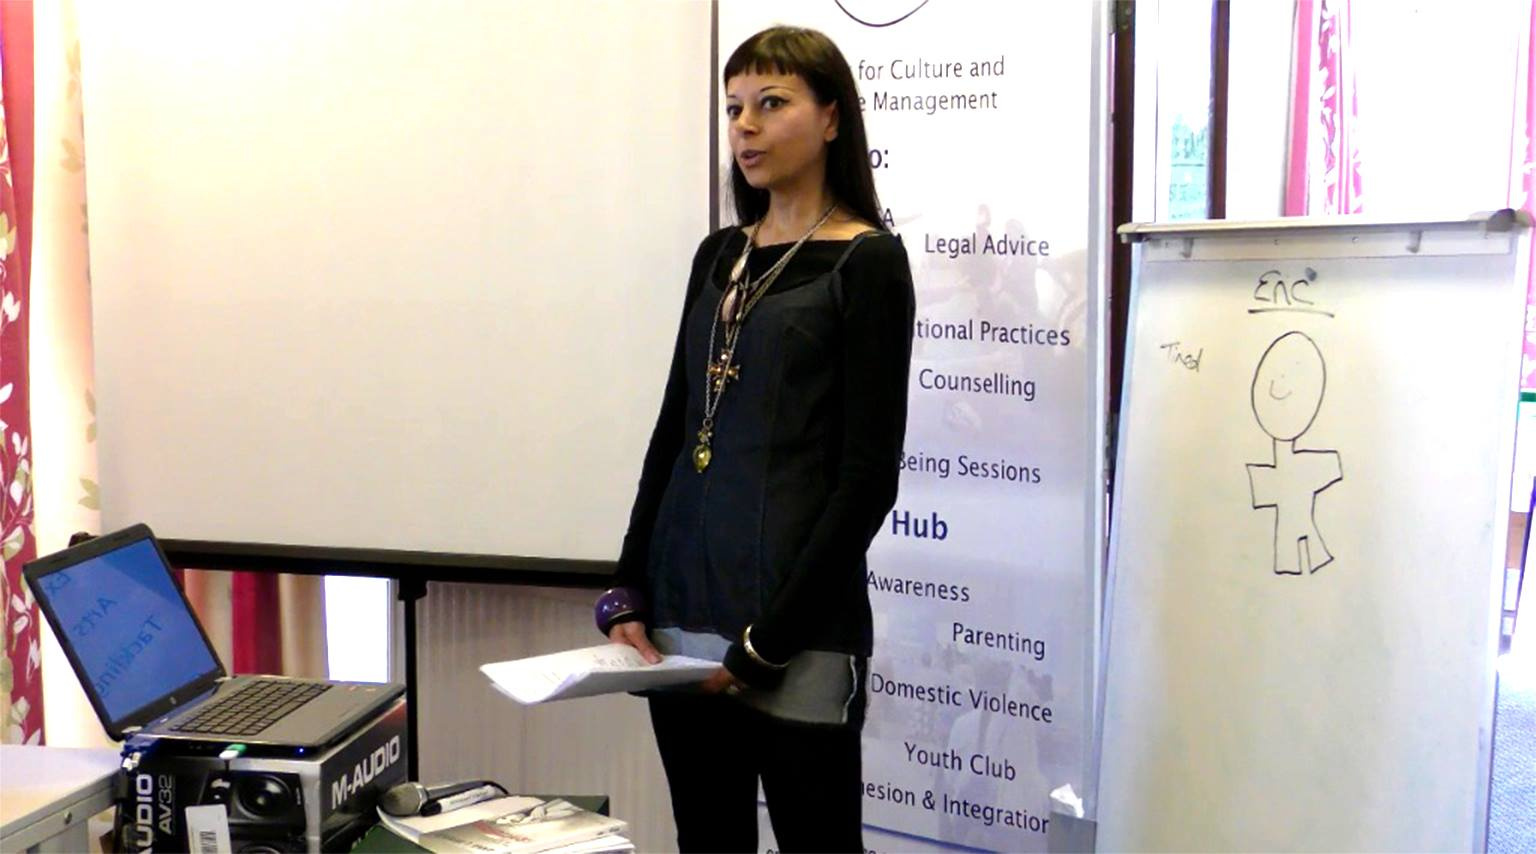 Anna Bragga speaking at ACCM UK's Happy Mindfulness Event October 2018